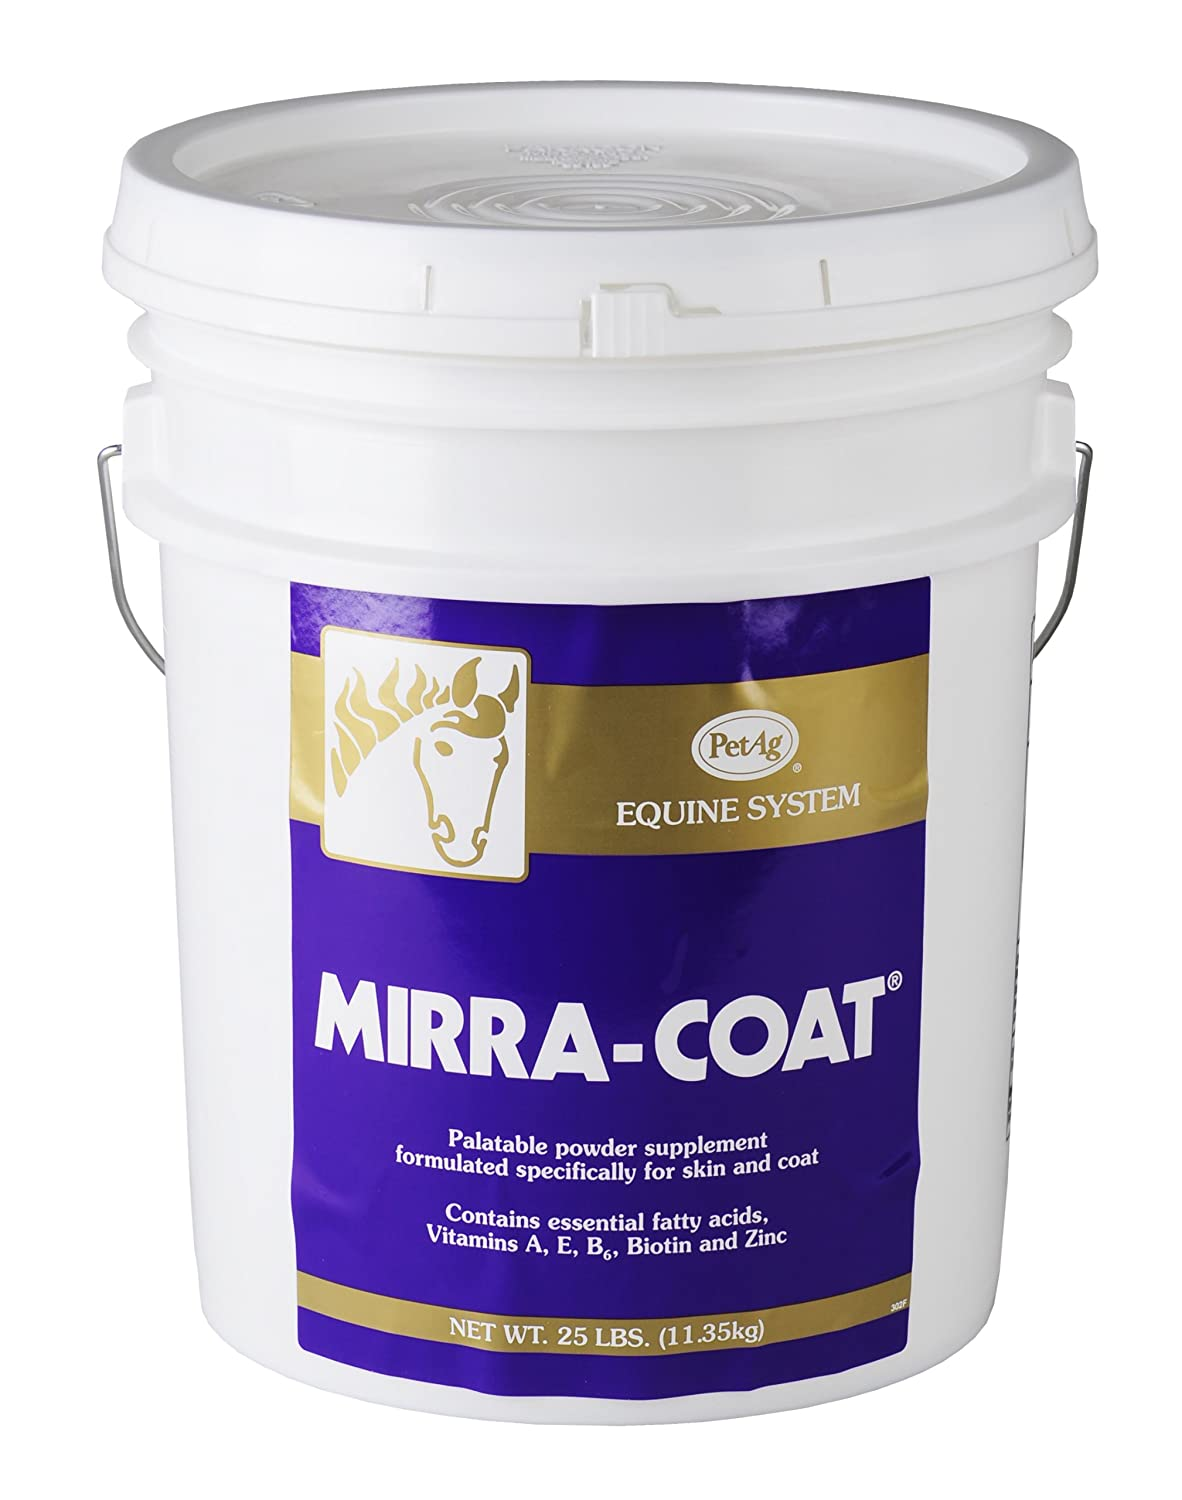 (11kg) Pet Ag Mirra-Coat Powder 25 Pound 99631